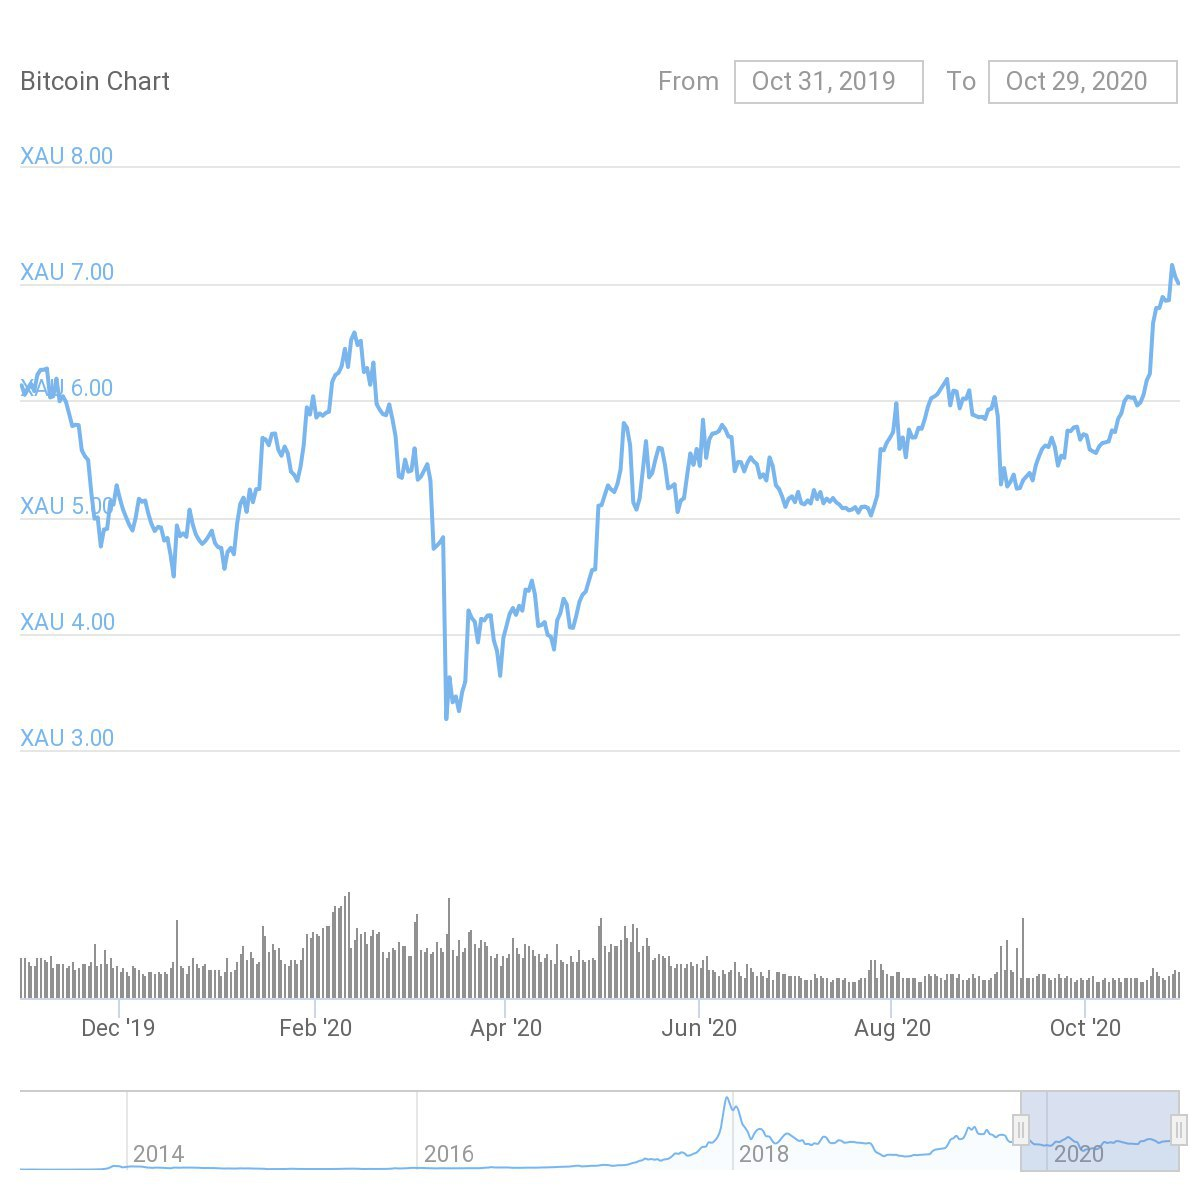 Gold drops to 7oz per BTC as Peter Schiff calls Bitcoin 'biggest bubble'